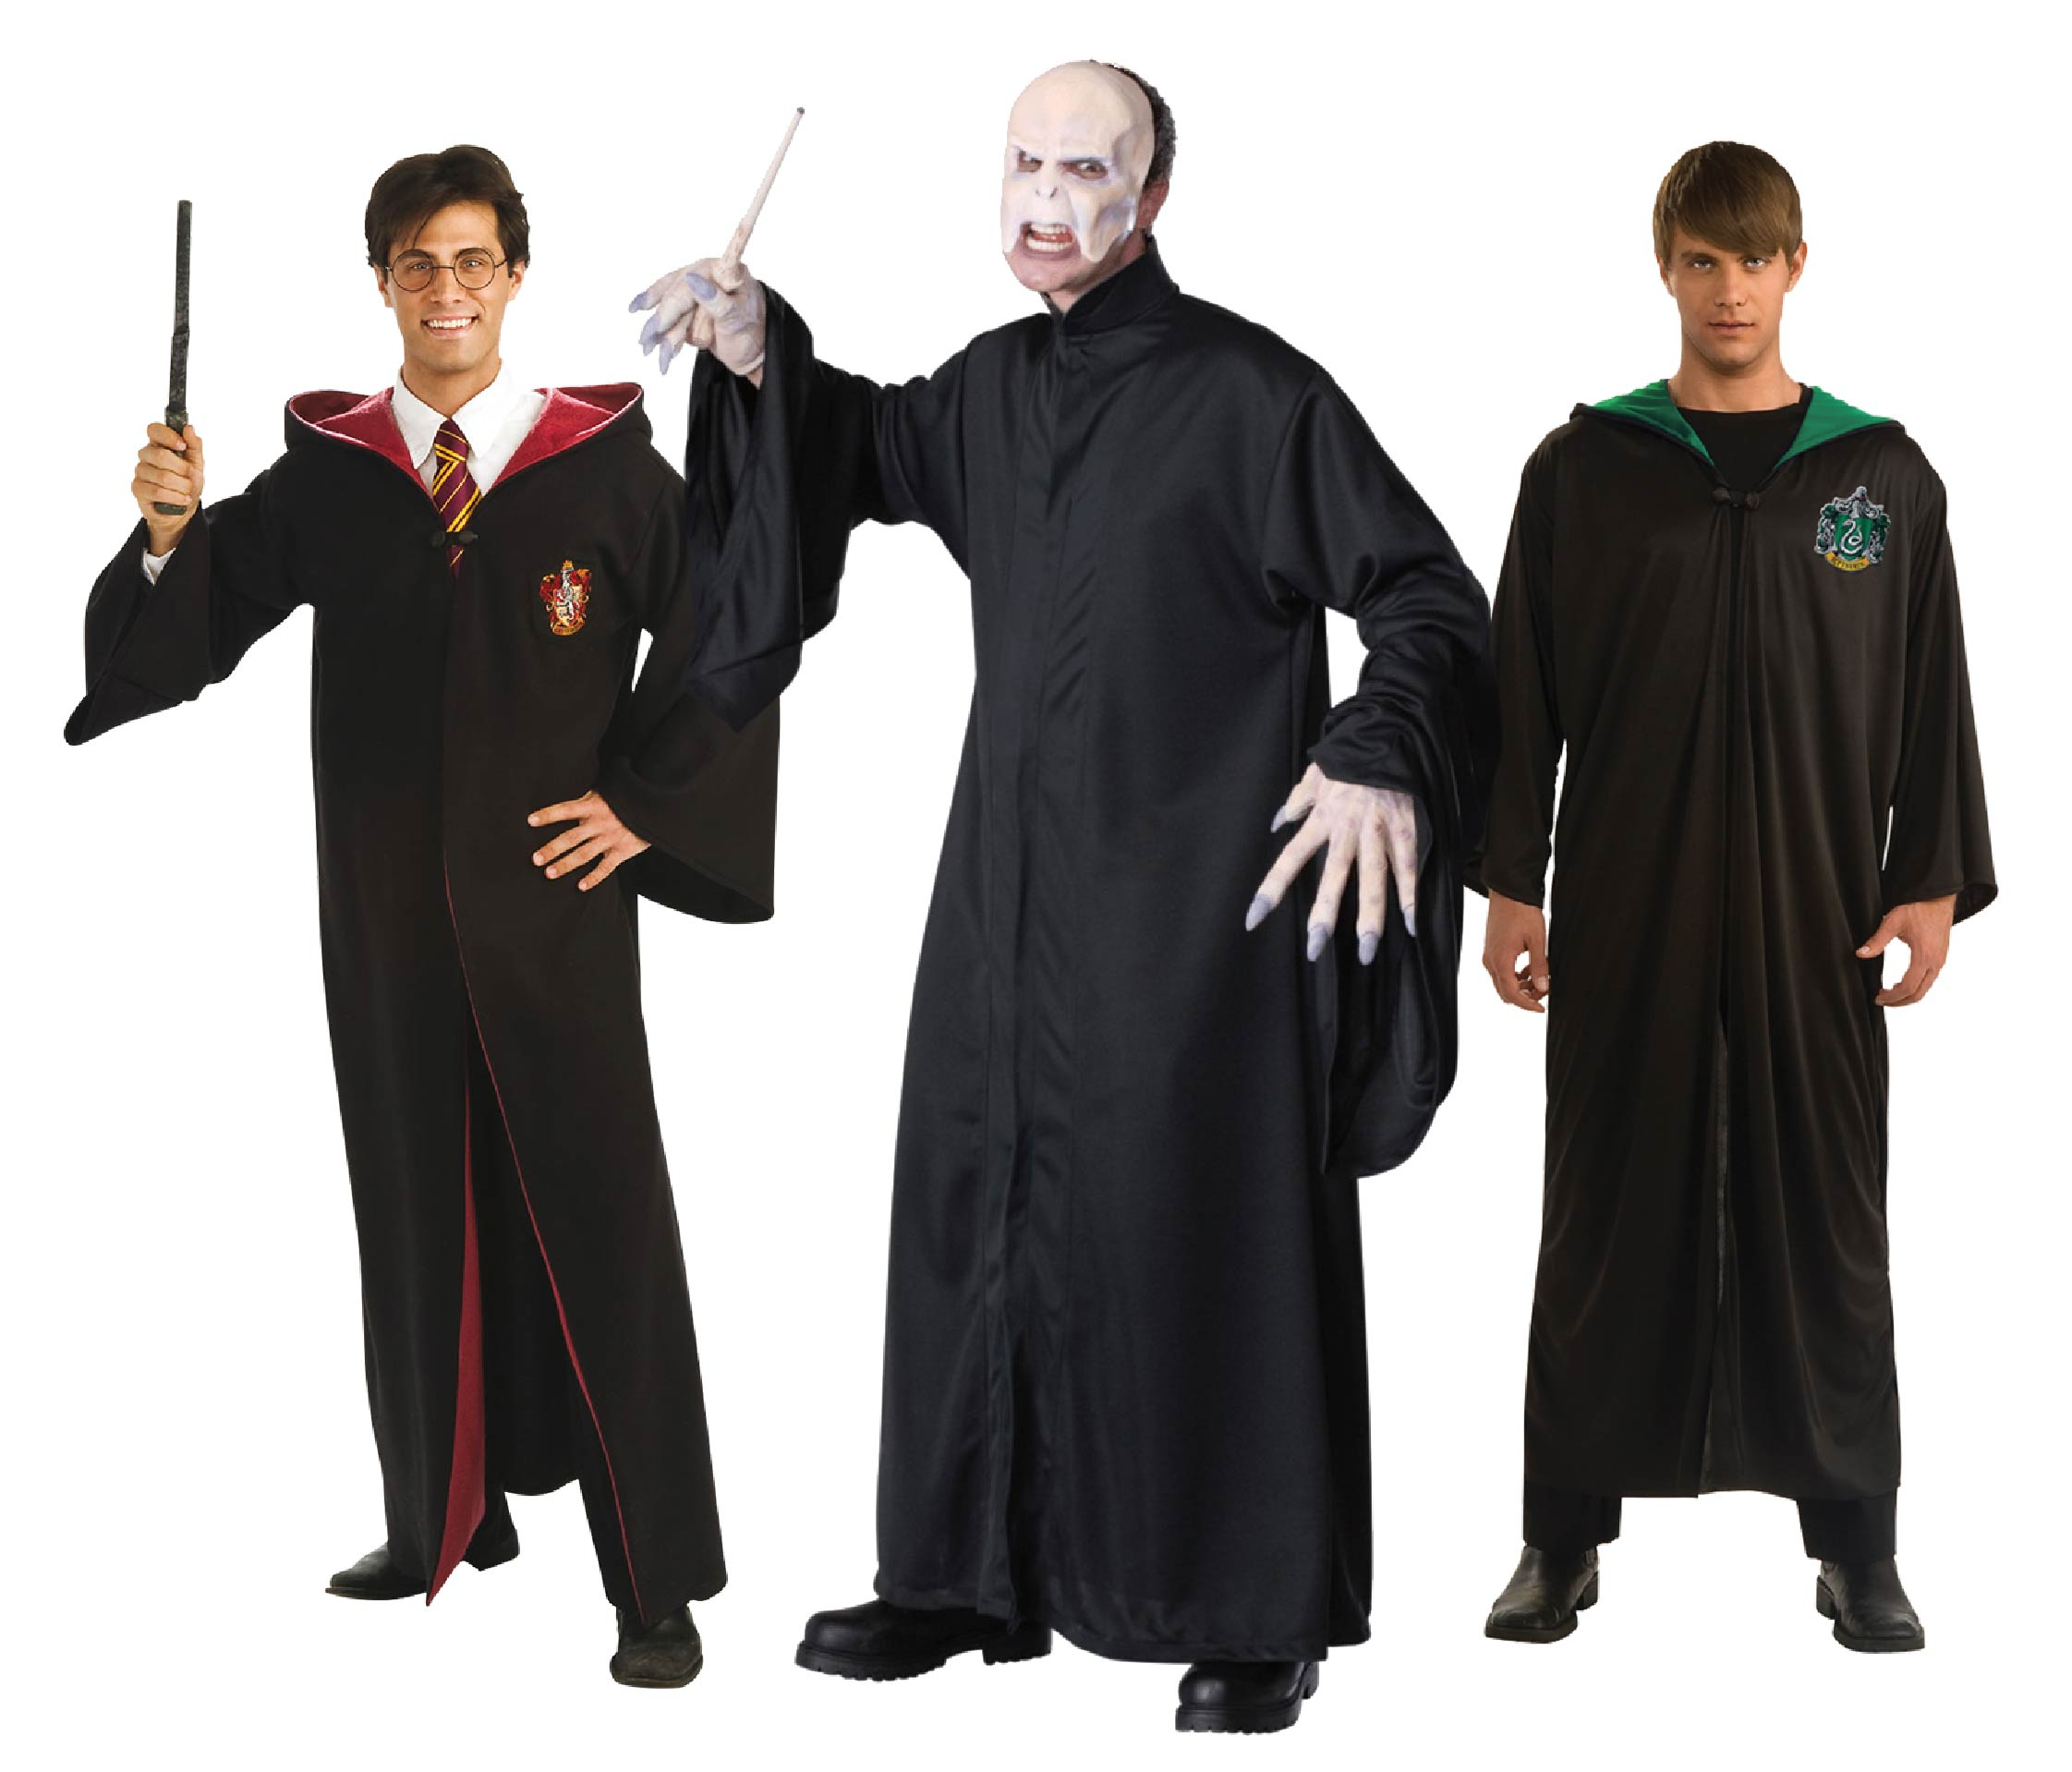 Three men wearing Harry Potter costumes including Voldemort, Gryffindor and Slytherin robes.